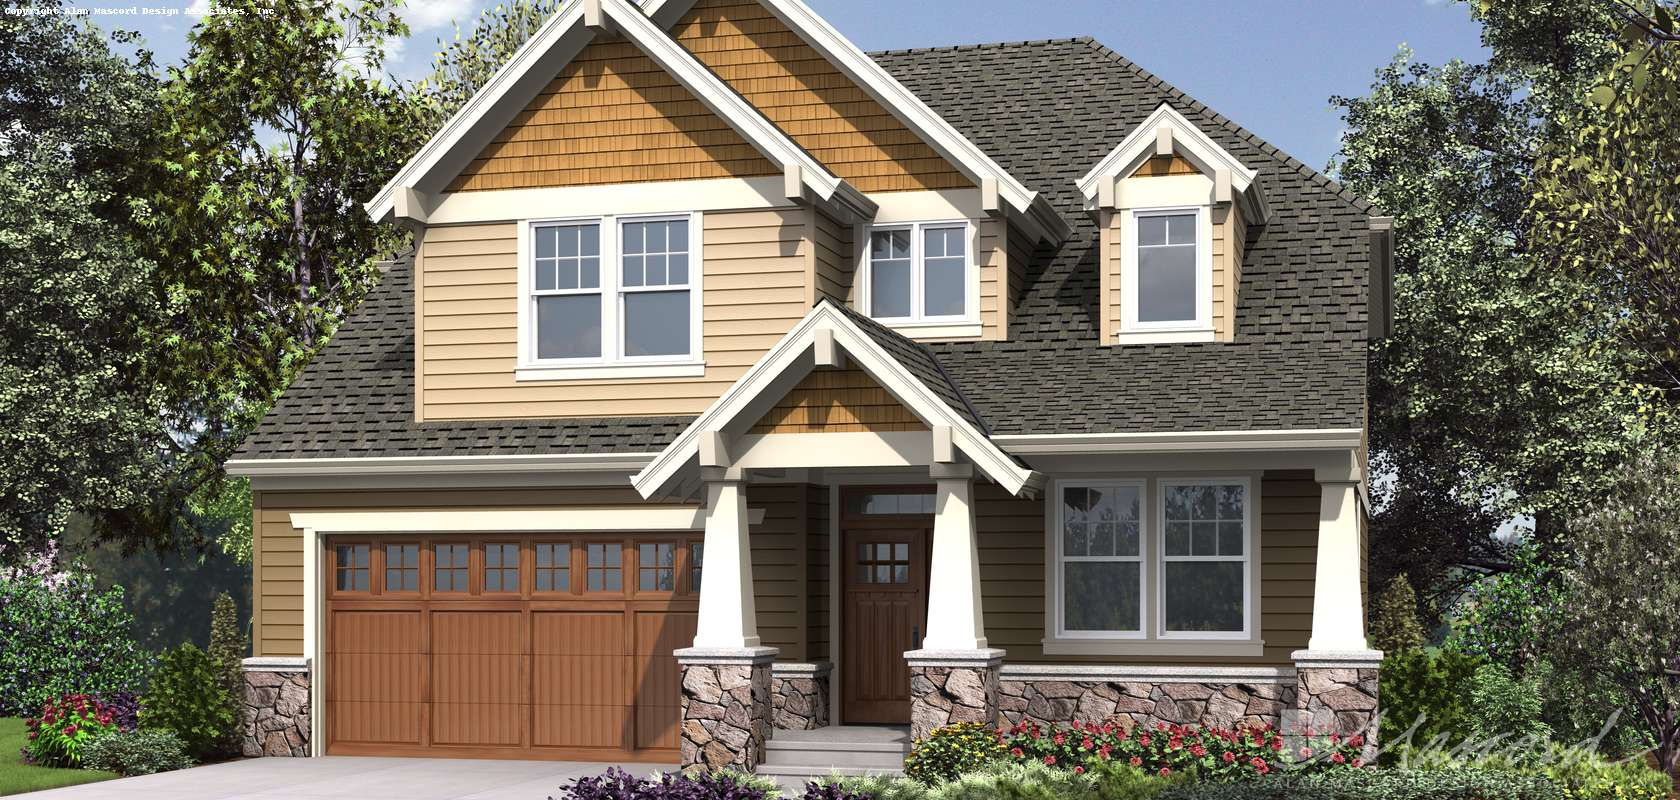 Mascord House Plan 23114A: The Summerfell